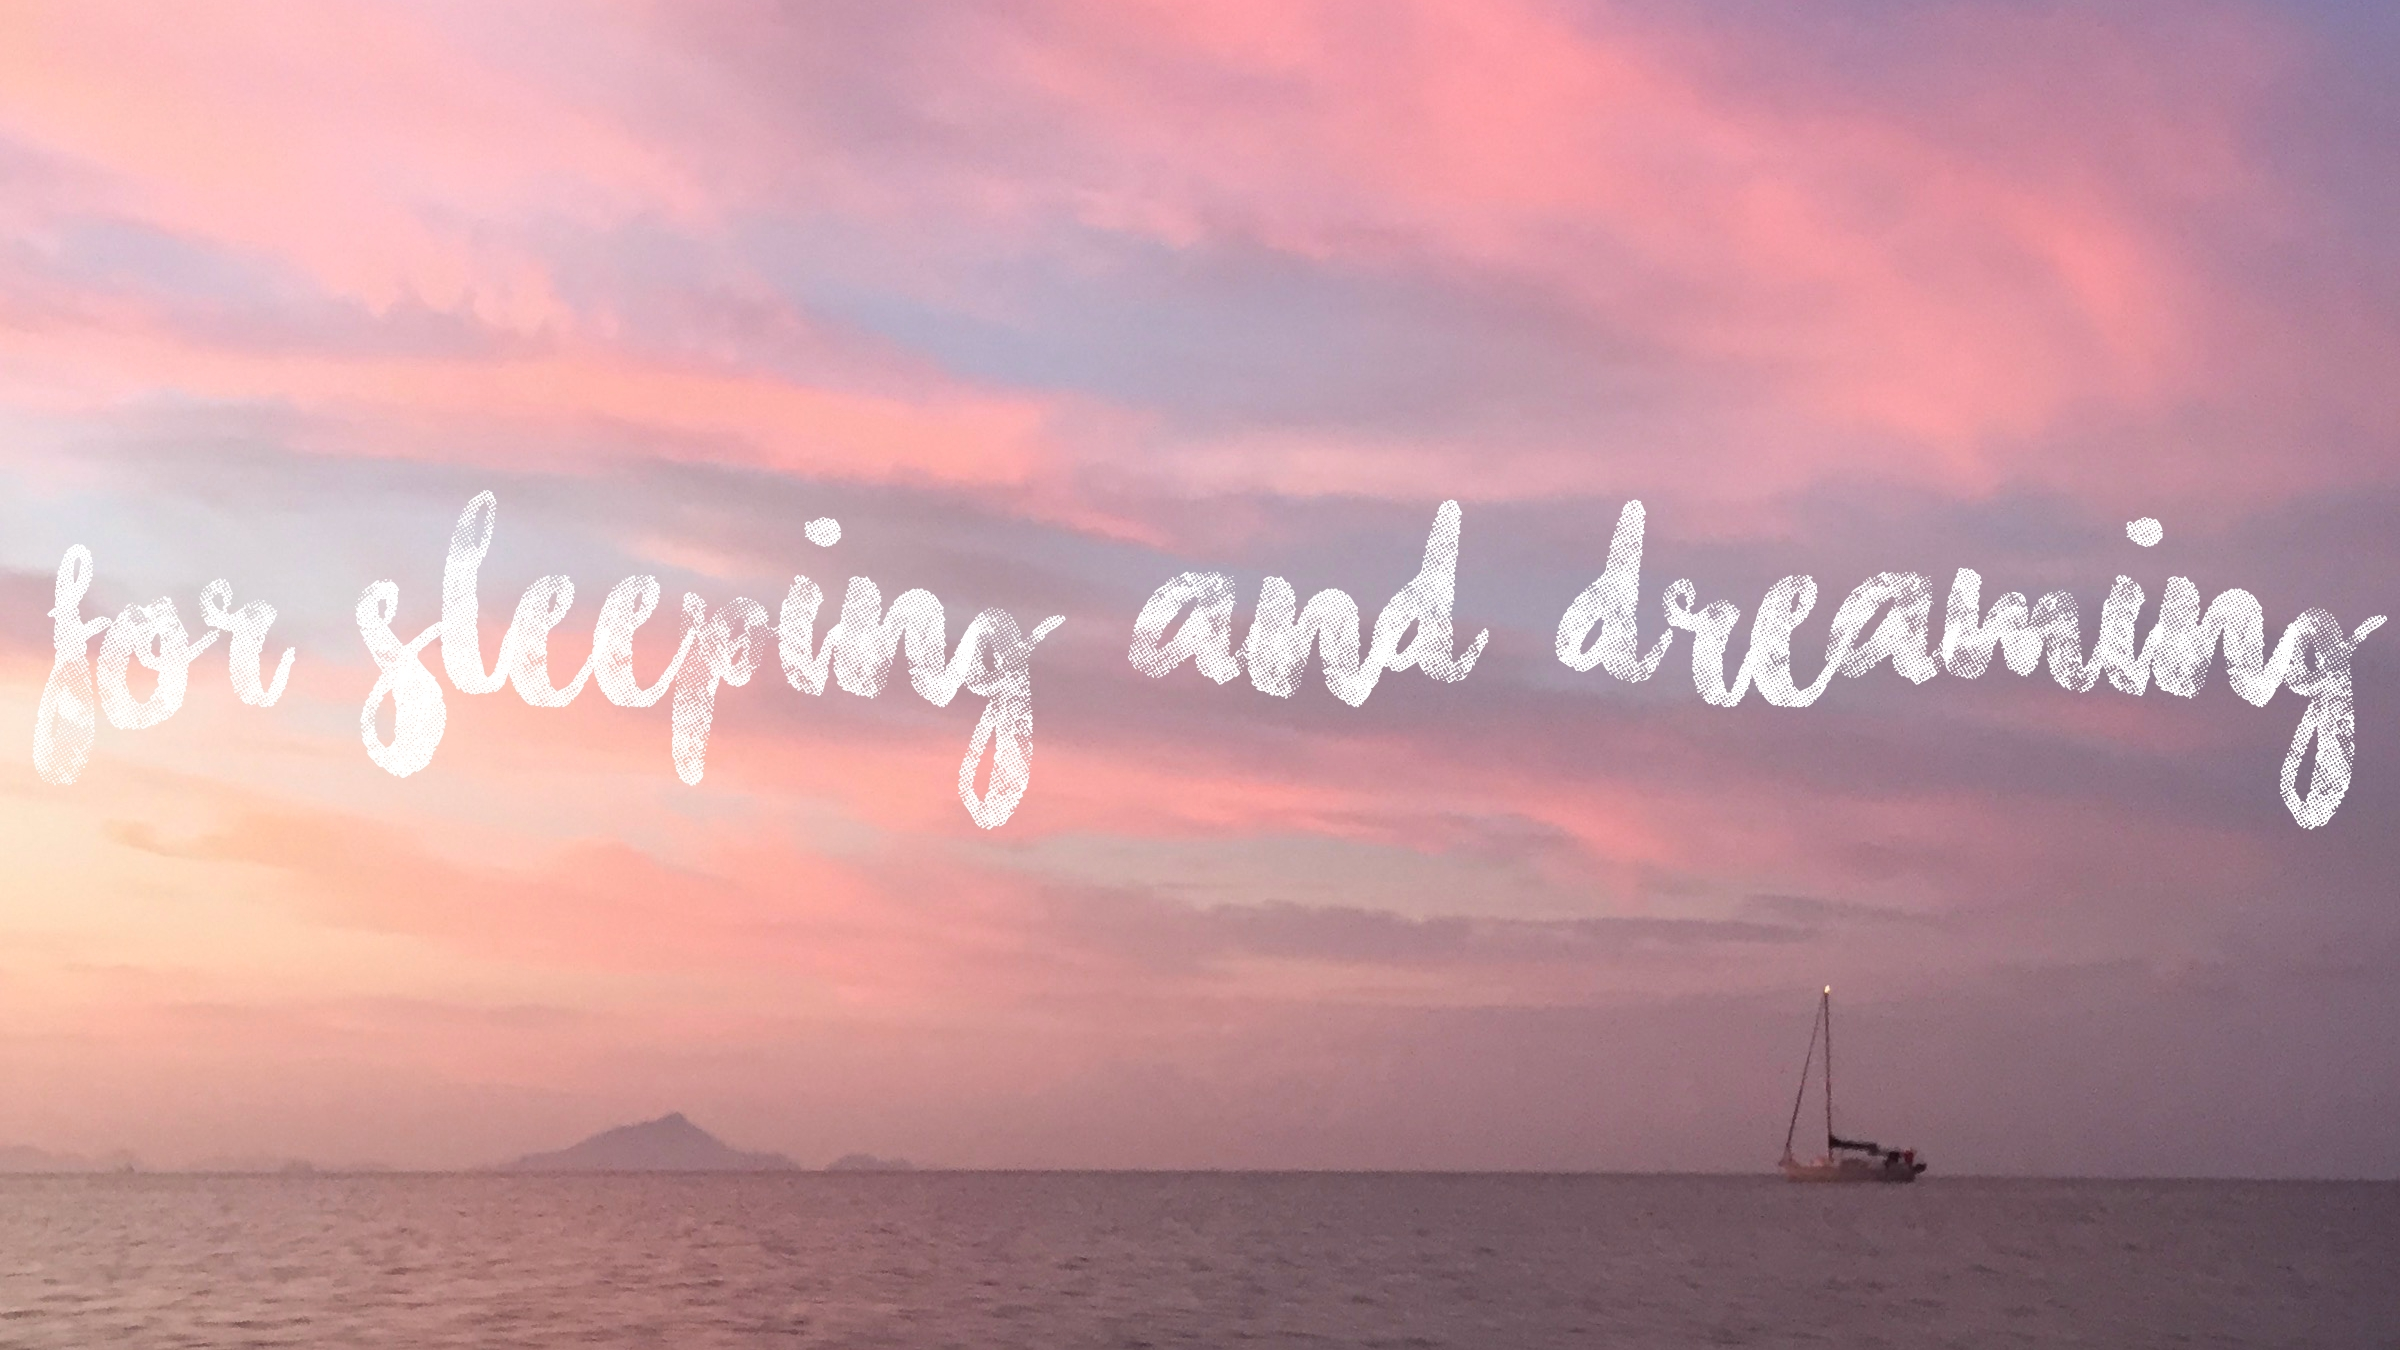 For Sleeping & Dreaming - 20+ chill songs for, well, snoozing...